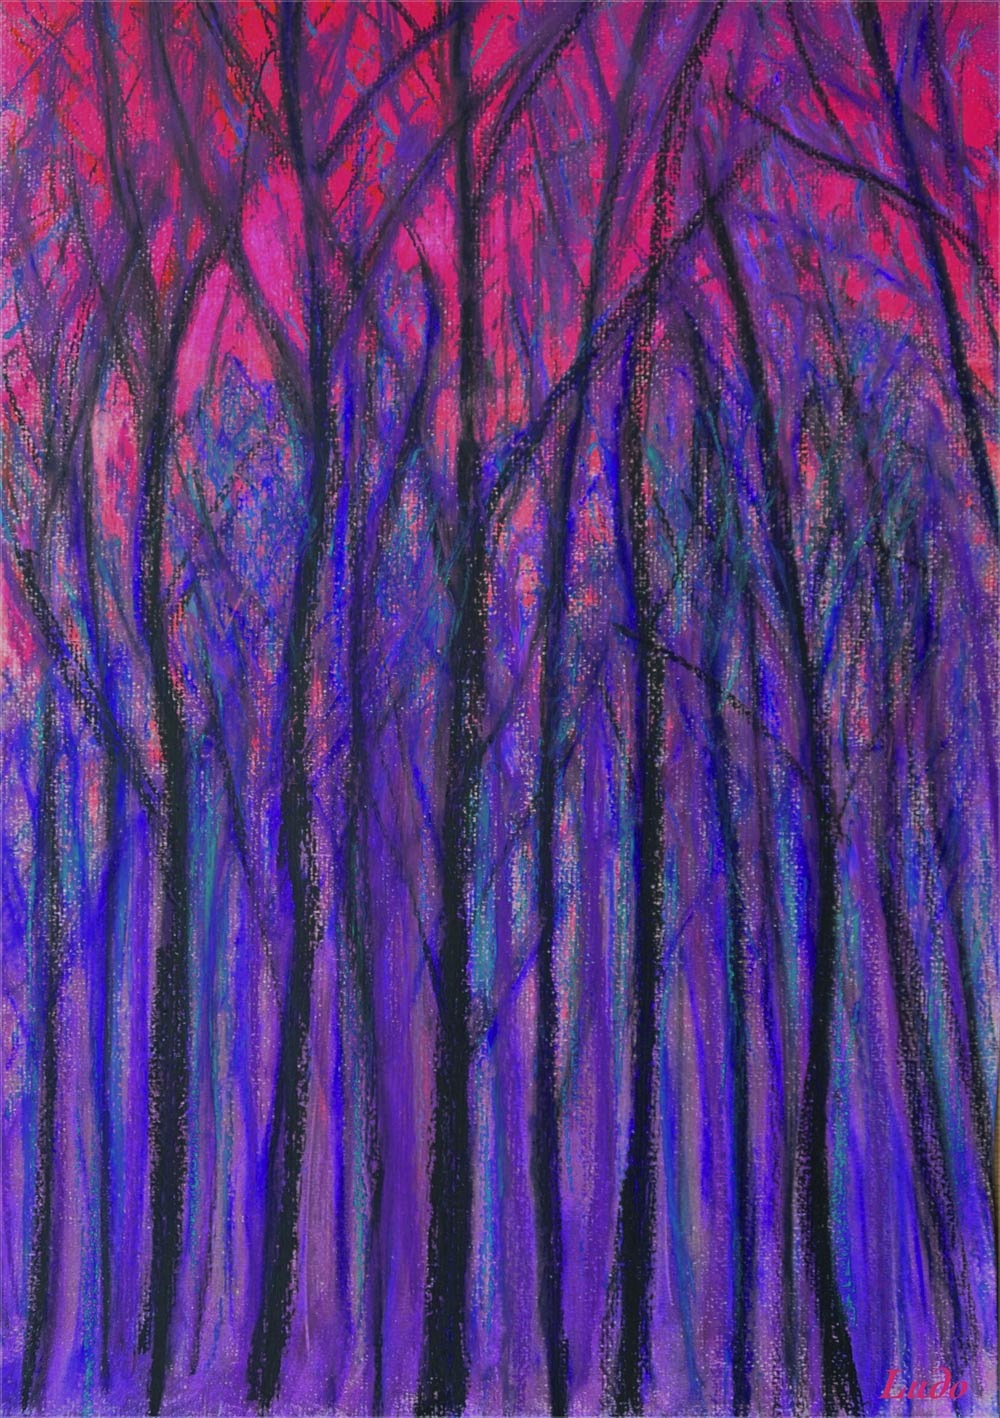 Lahonce forest no. 3. Oil Pastel &charcoal on paper, 42x30, 2015.